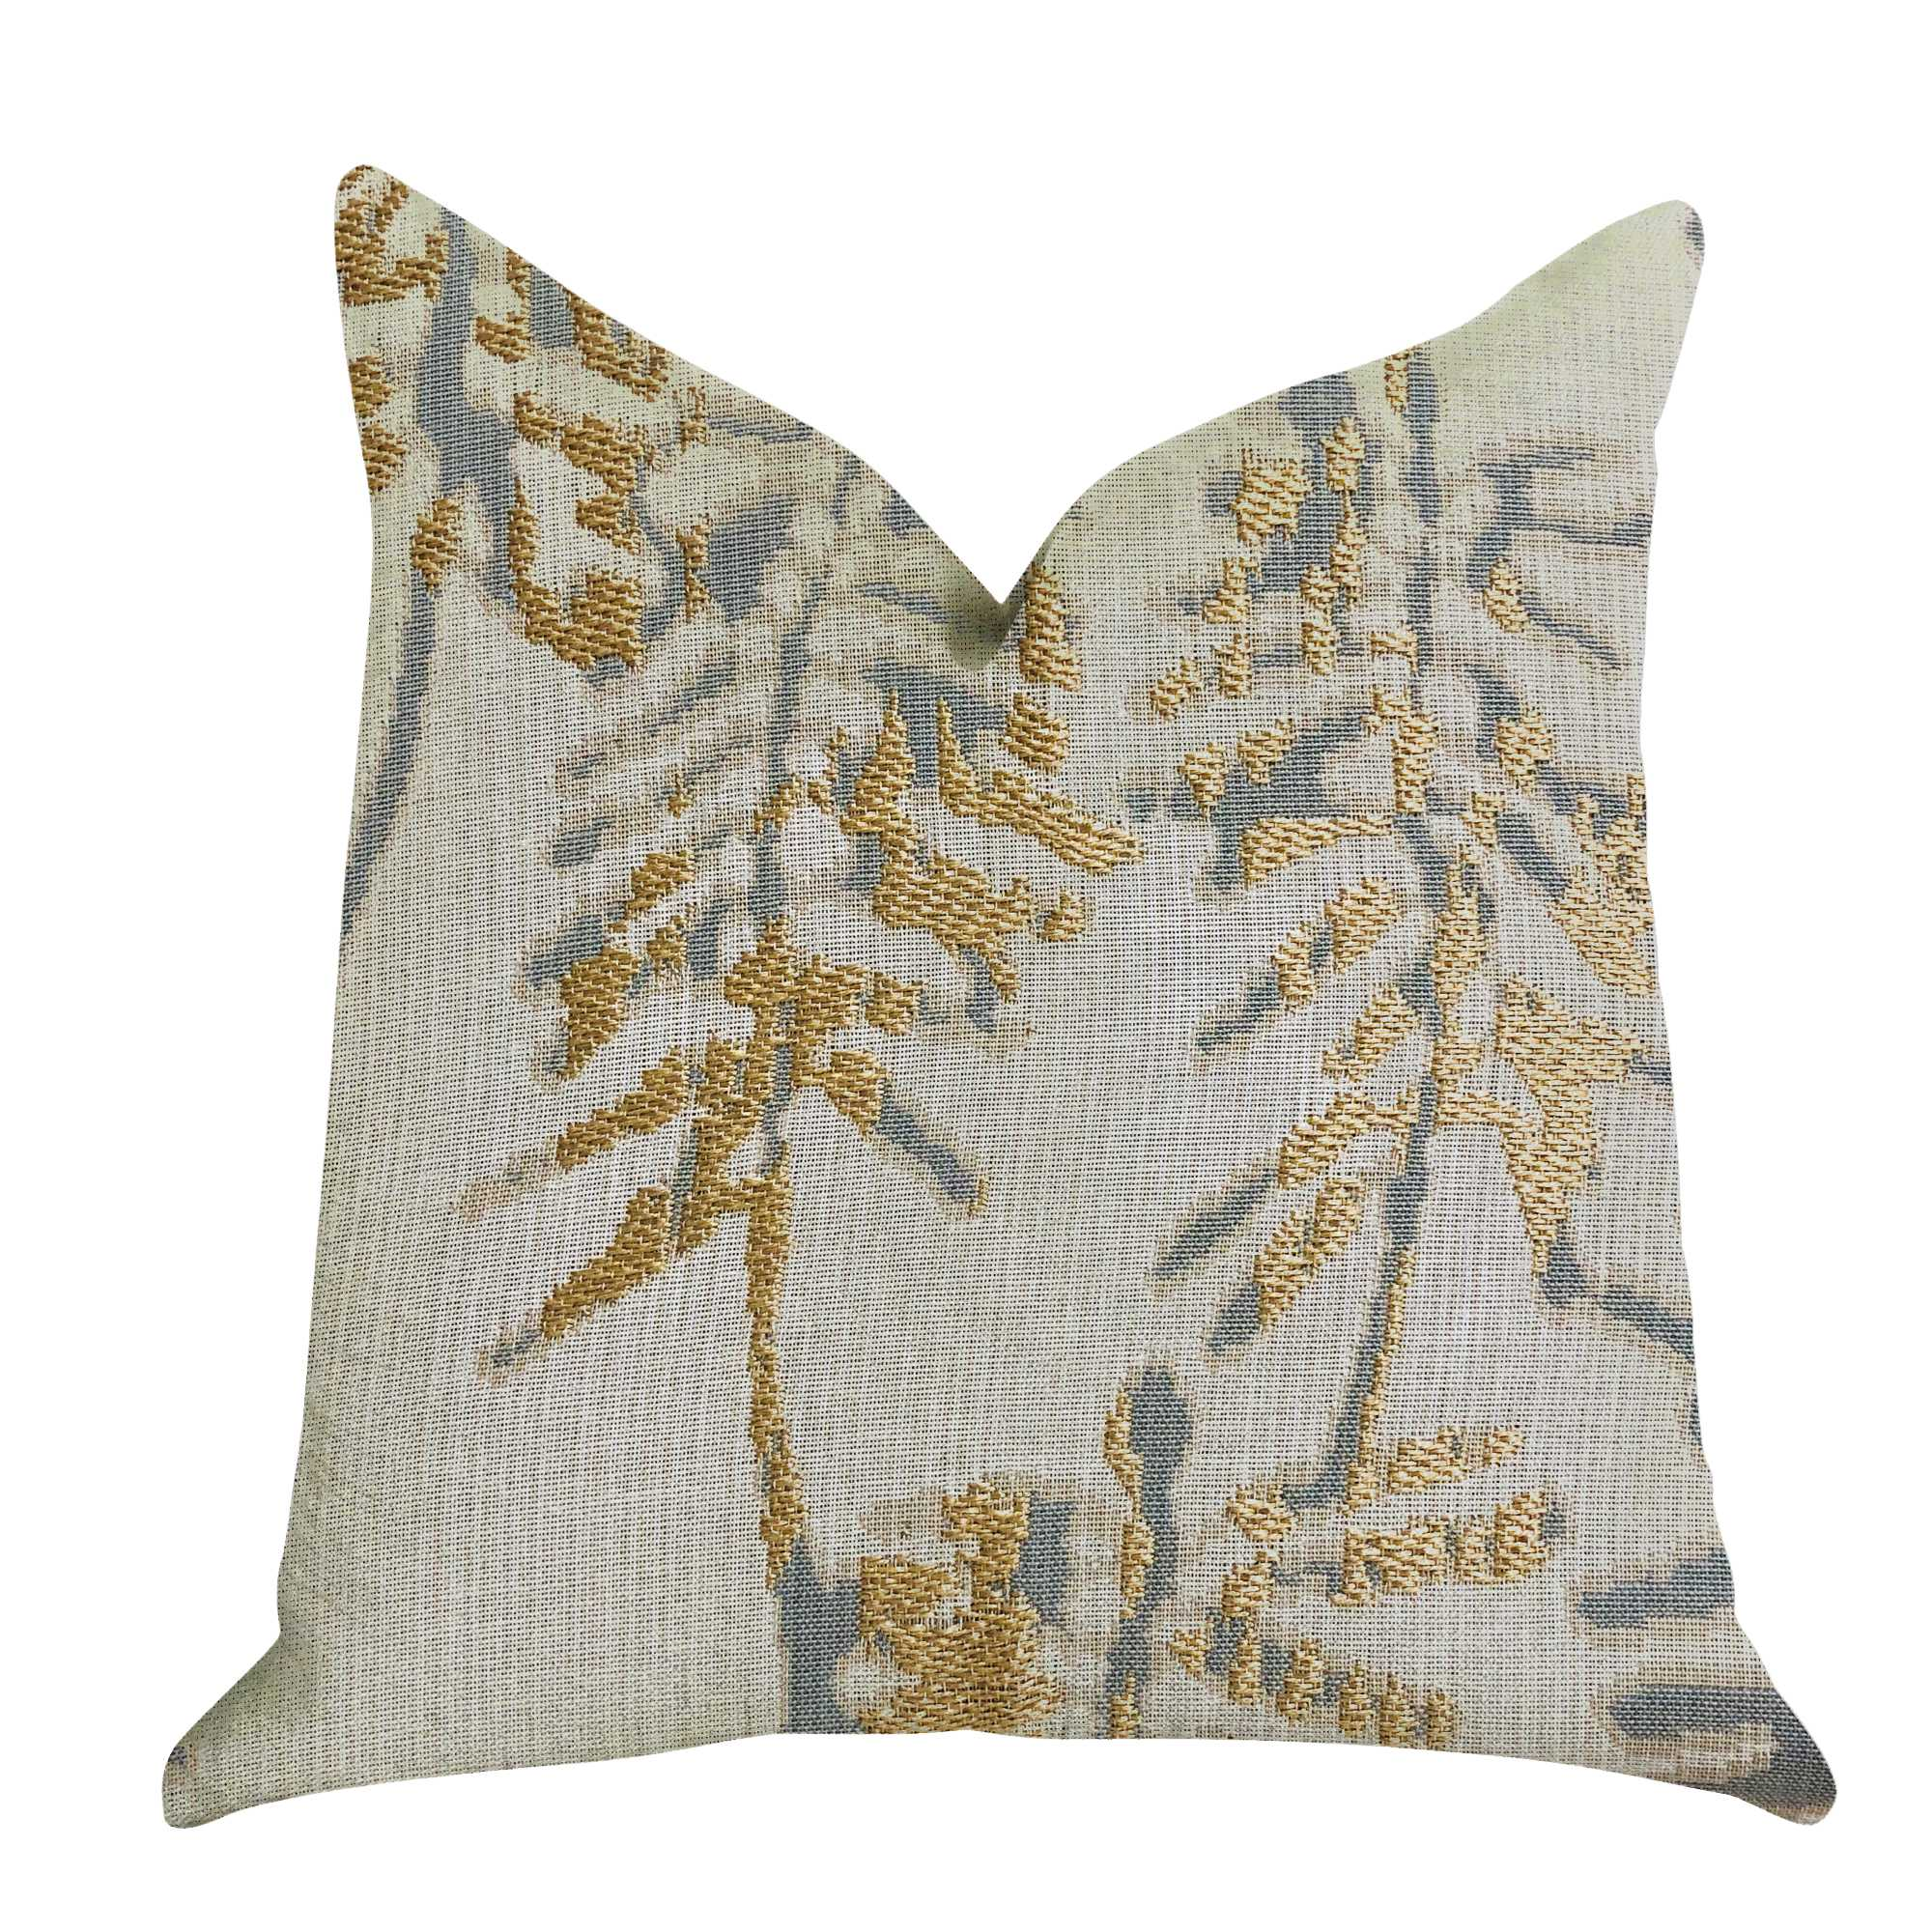 Luxury Throw Pillow in Green and Gold Tones 26in x 26in